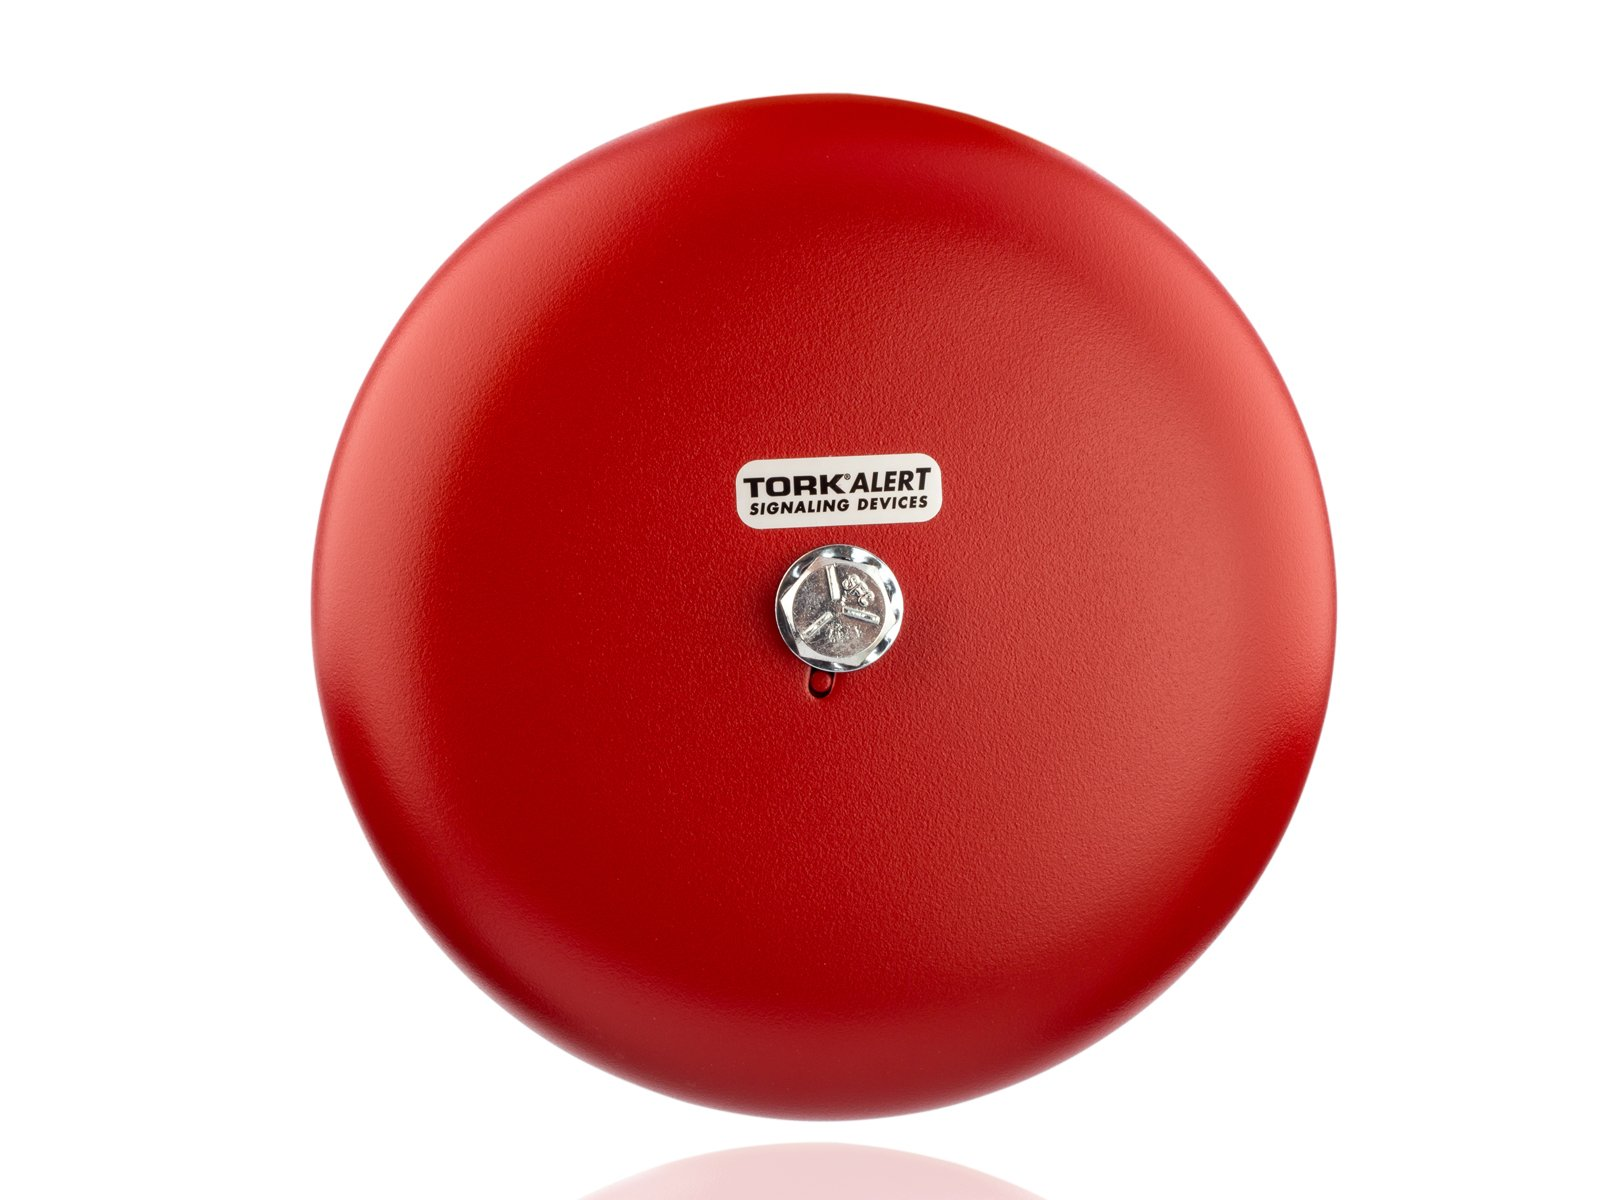 Steel/Aluminum Heavy Duty AC Vibrating Bell, 6'' Shell Size, 120 VAC, 0.065 Amp Input Current, Red